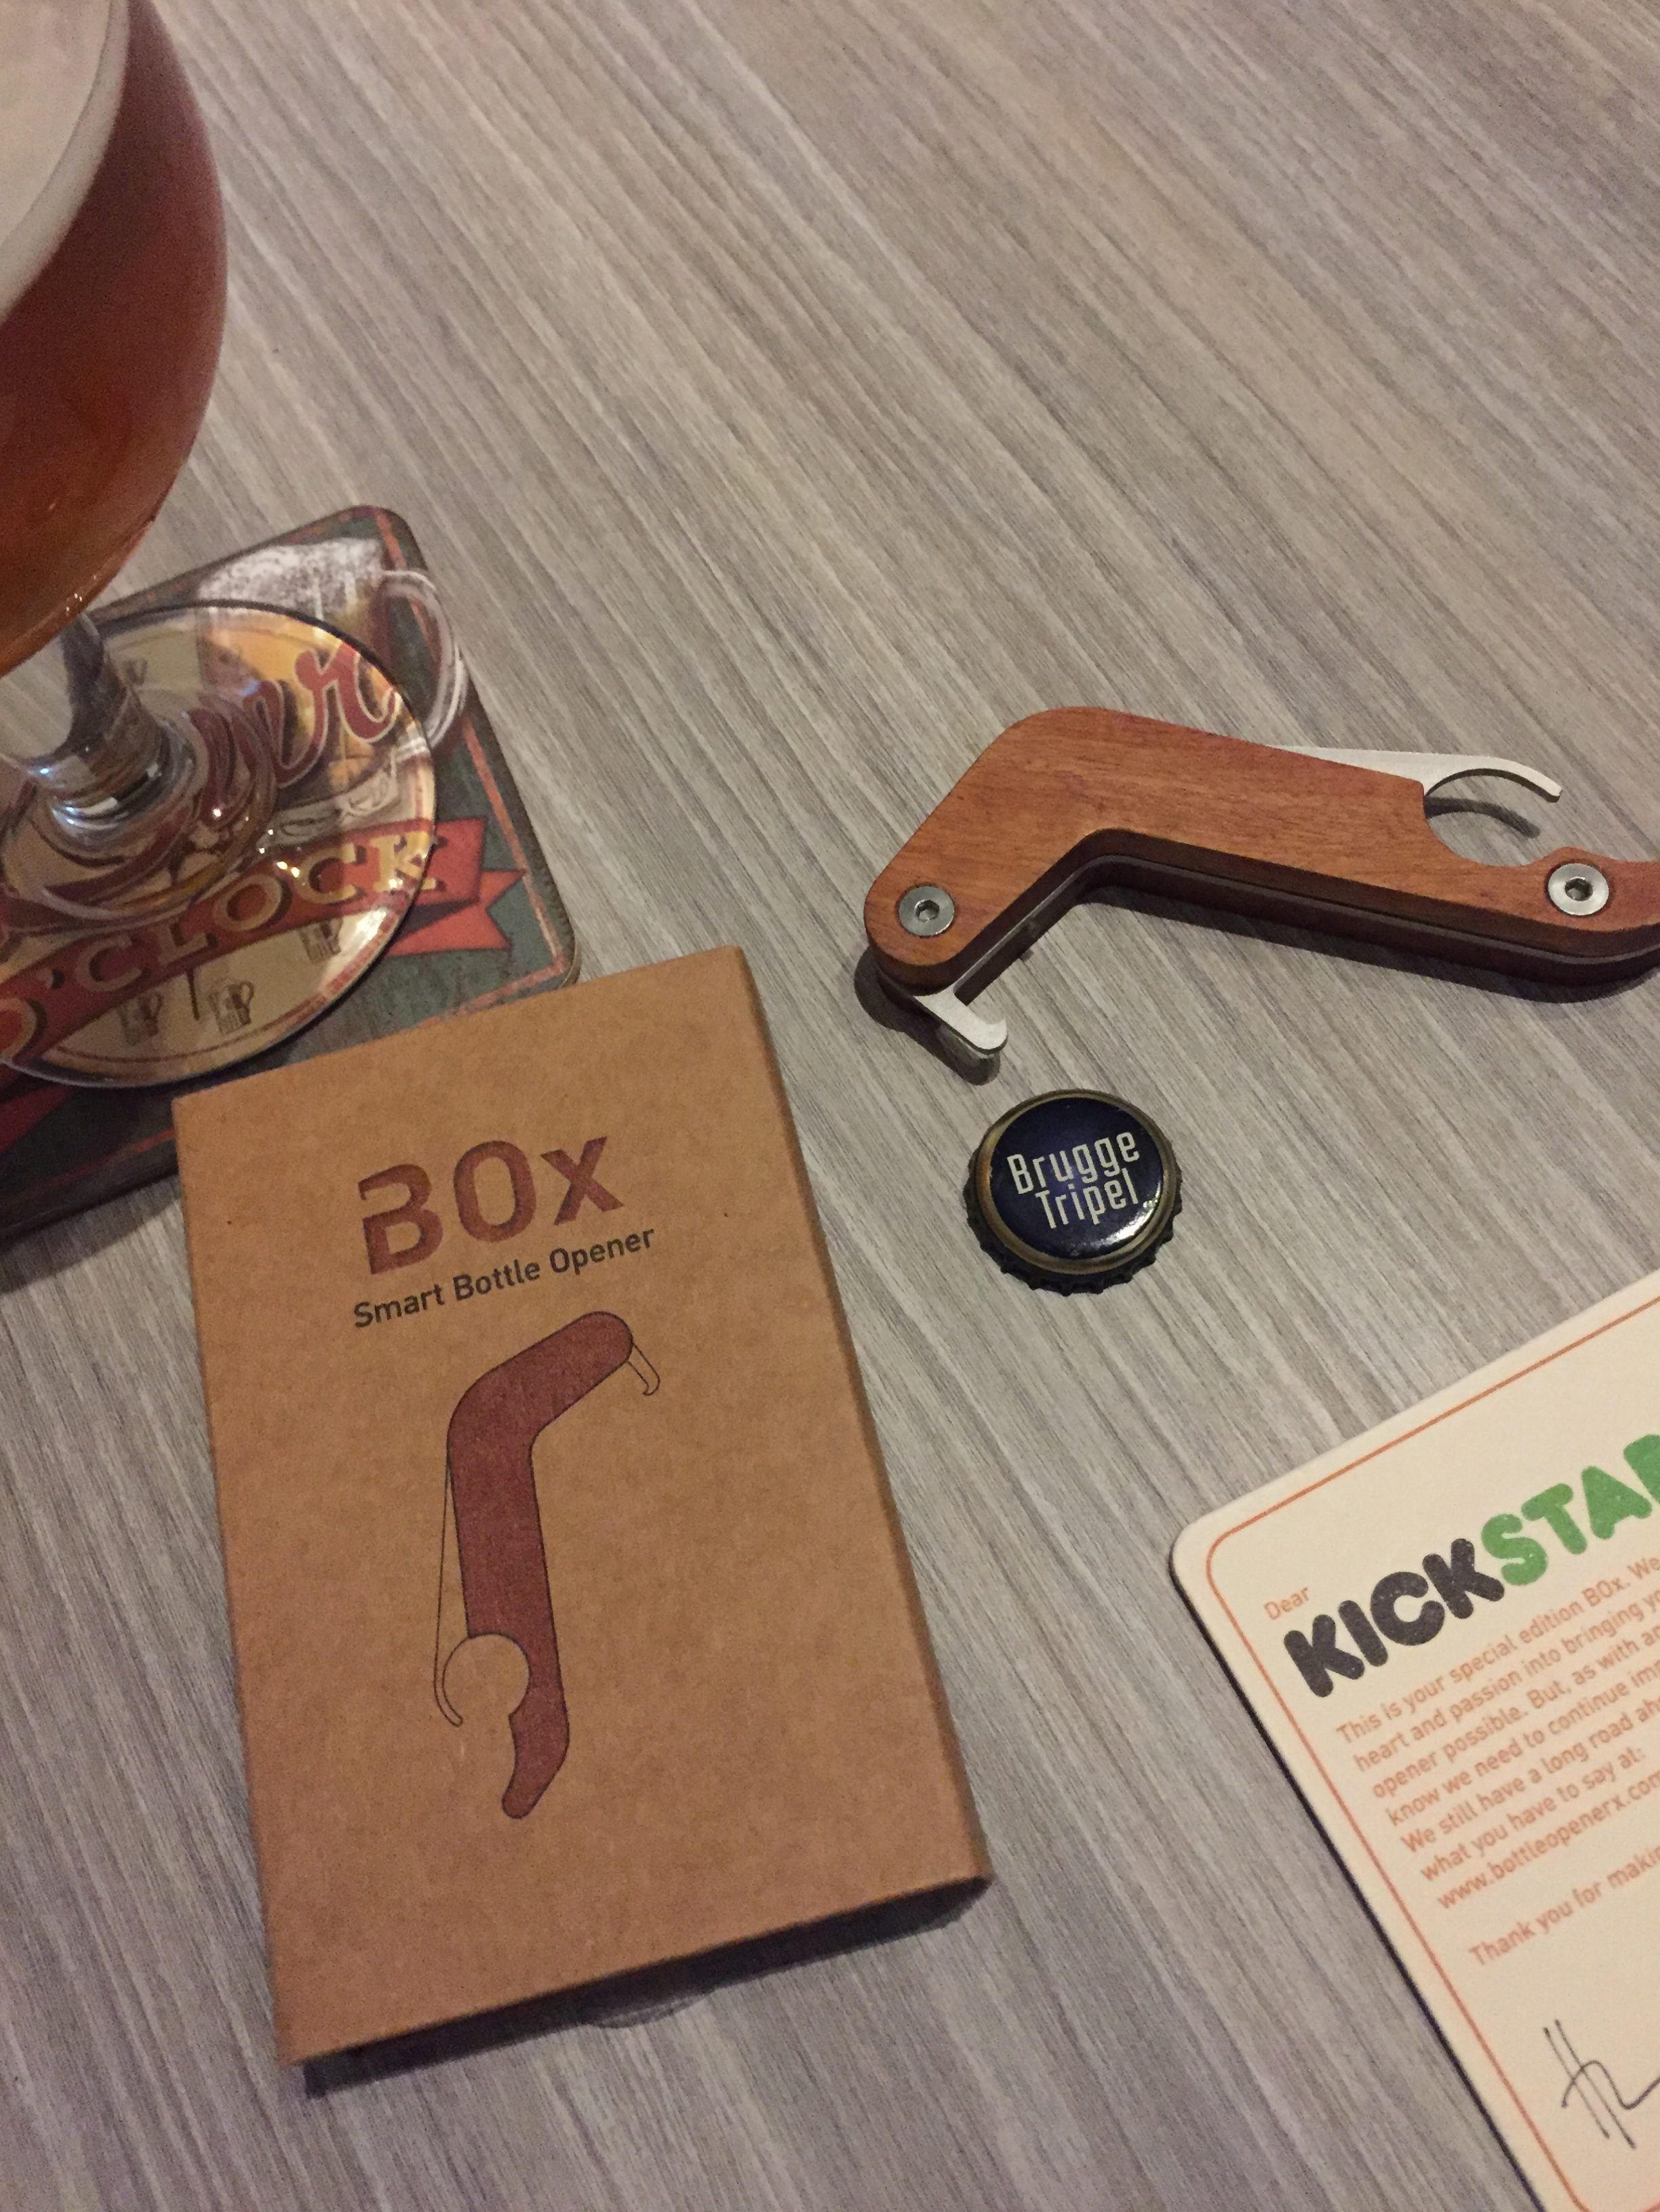 Unboxing Bottle Opener X (BOx)